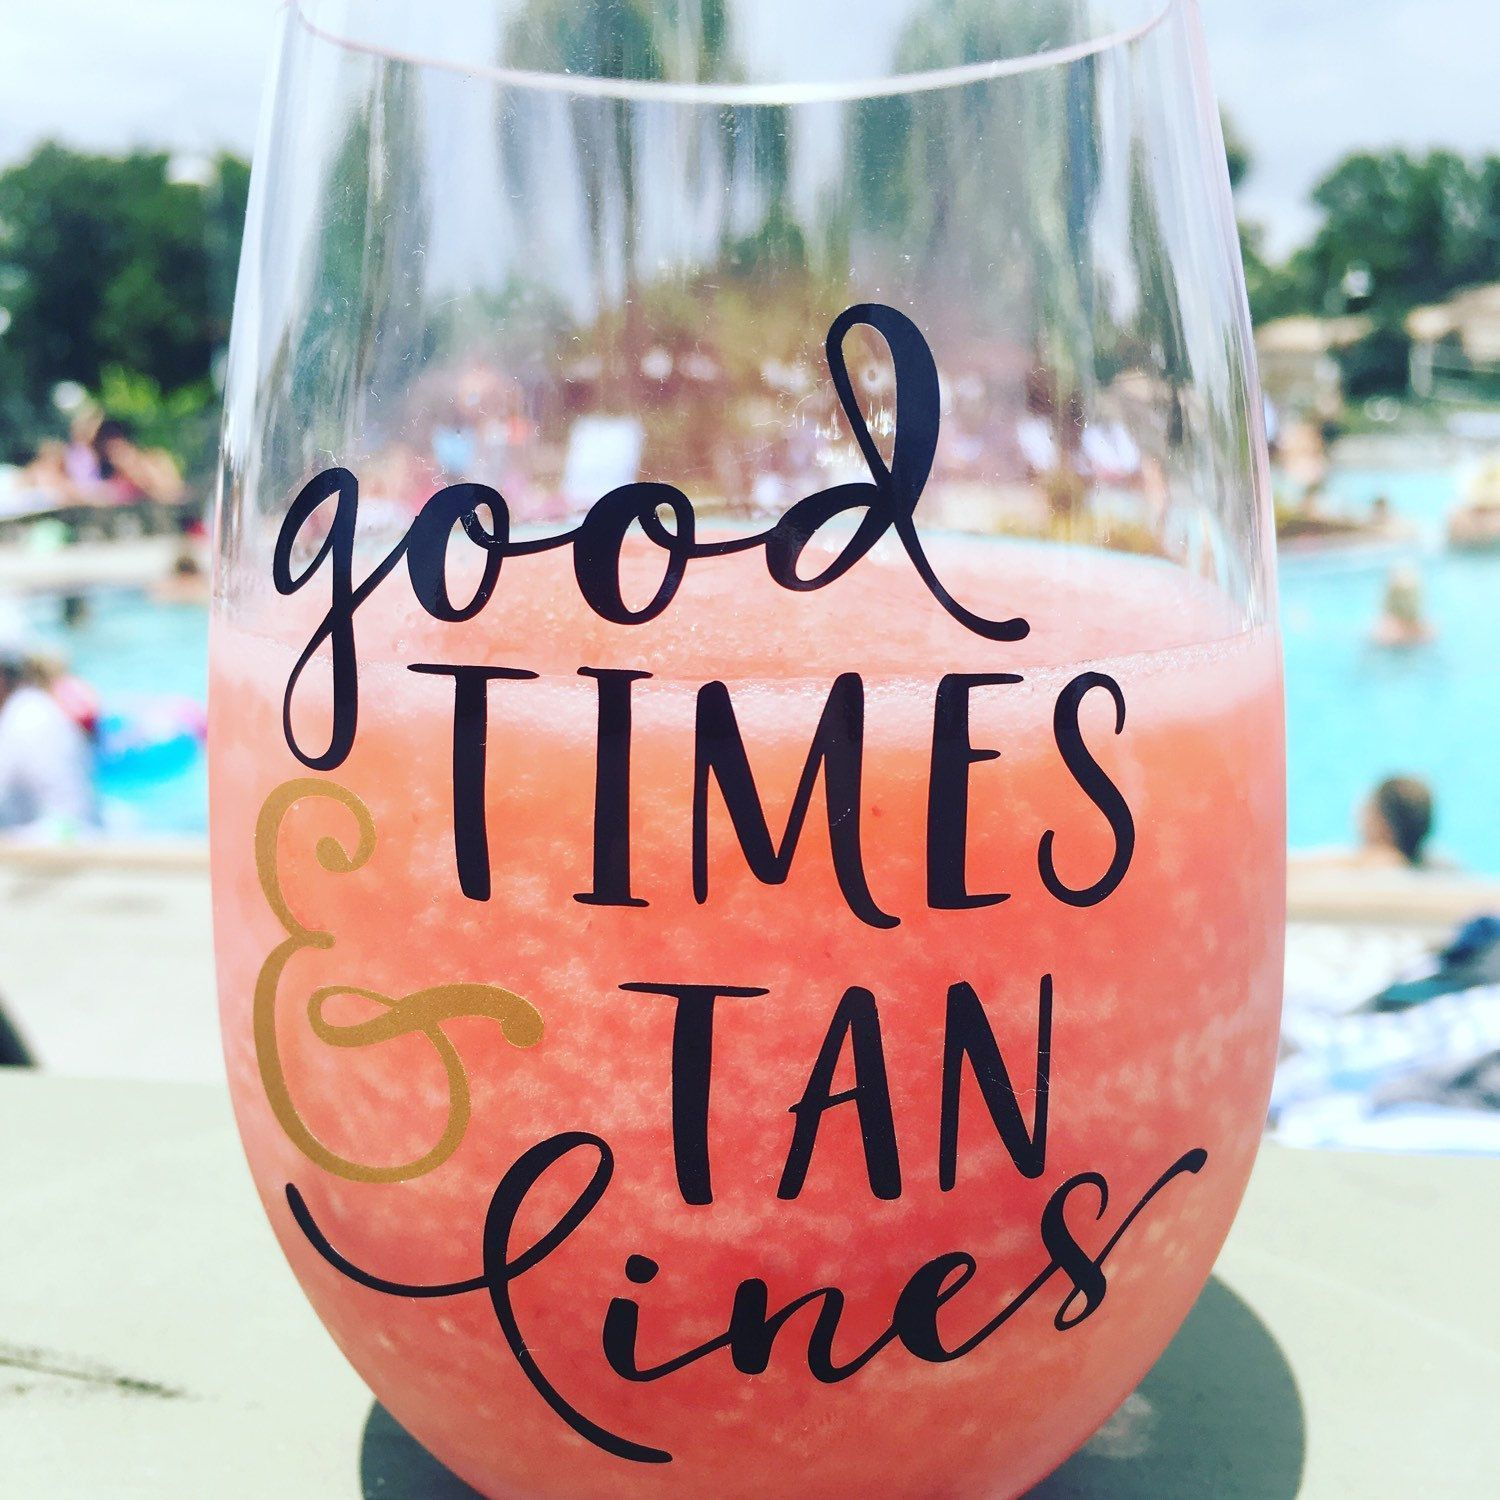 It S Summer Cool Off By The Pool With This Plastic Wine Drinking Glass Good Times Tan Lines Is Pe In 2020 Plastic Wine Glass Plastic Wine Cups Wine Glass Sayings